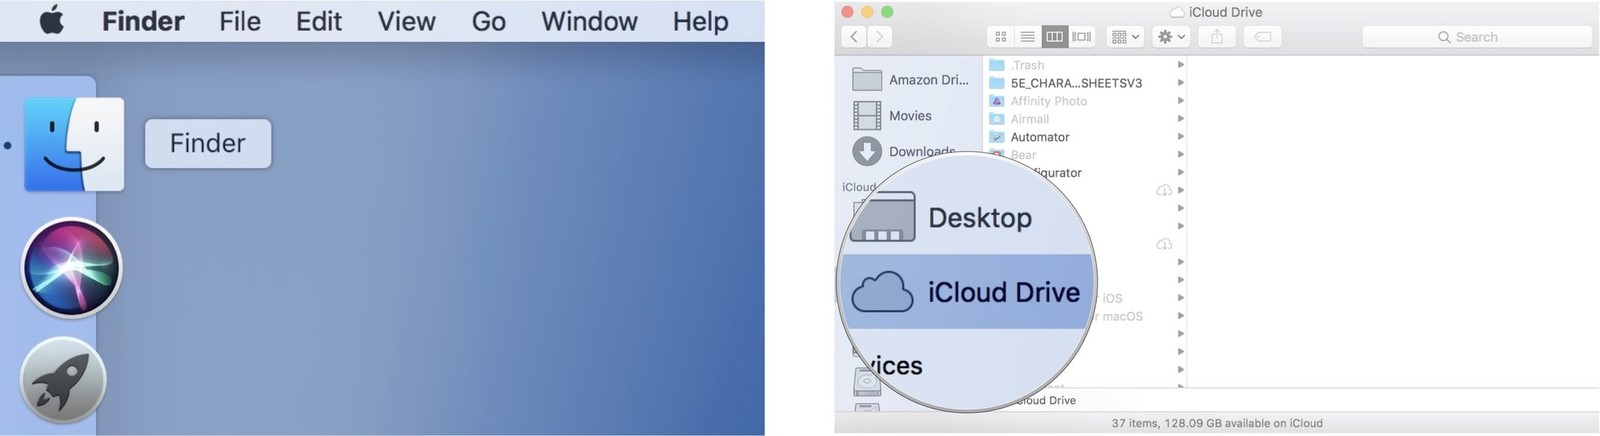 Launch Finder, then click on iCloud Drive